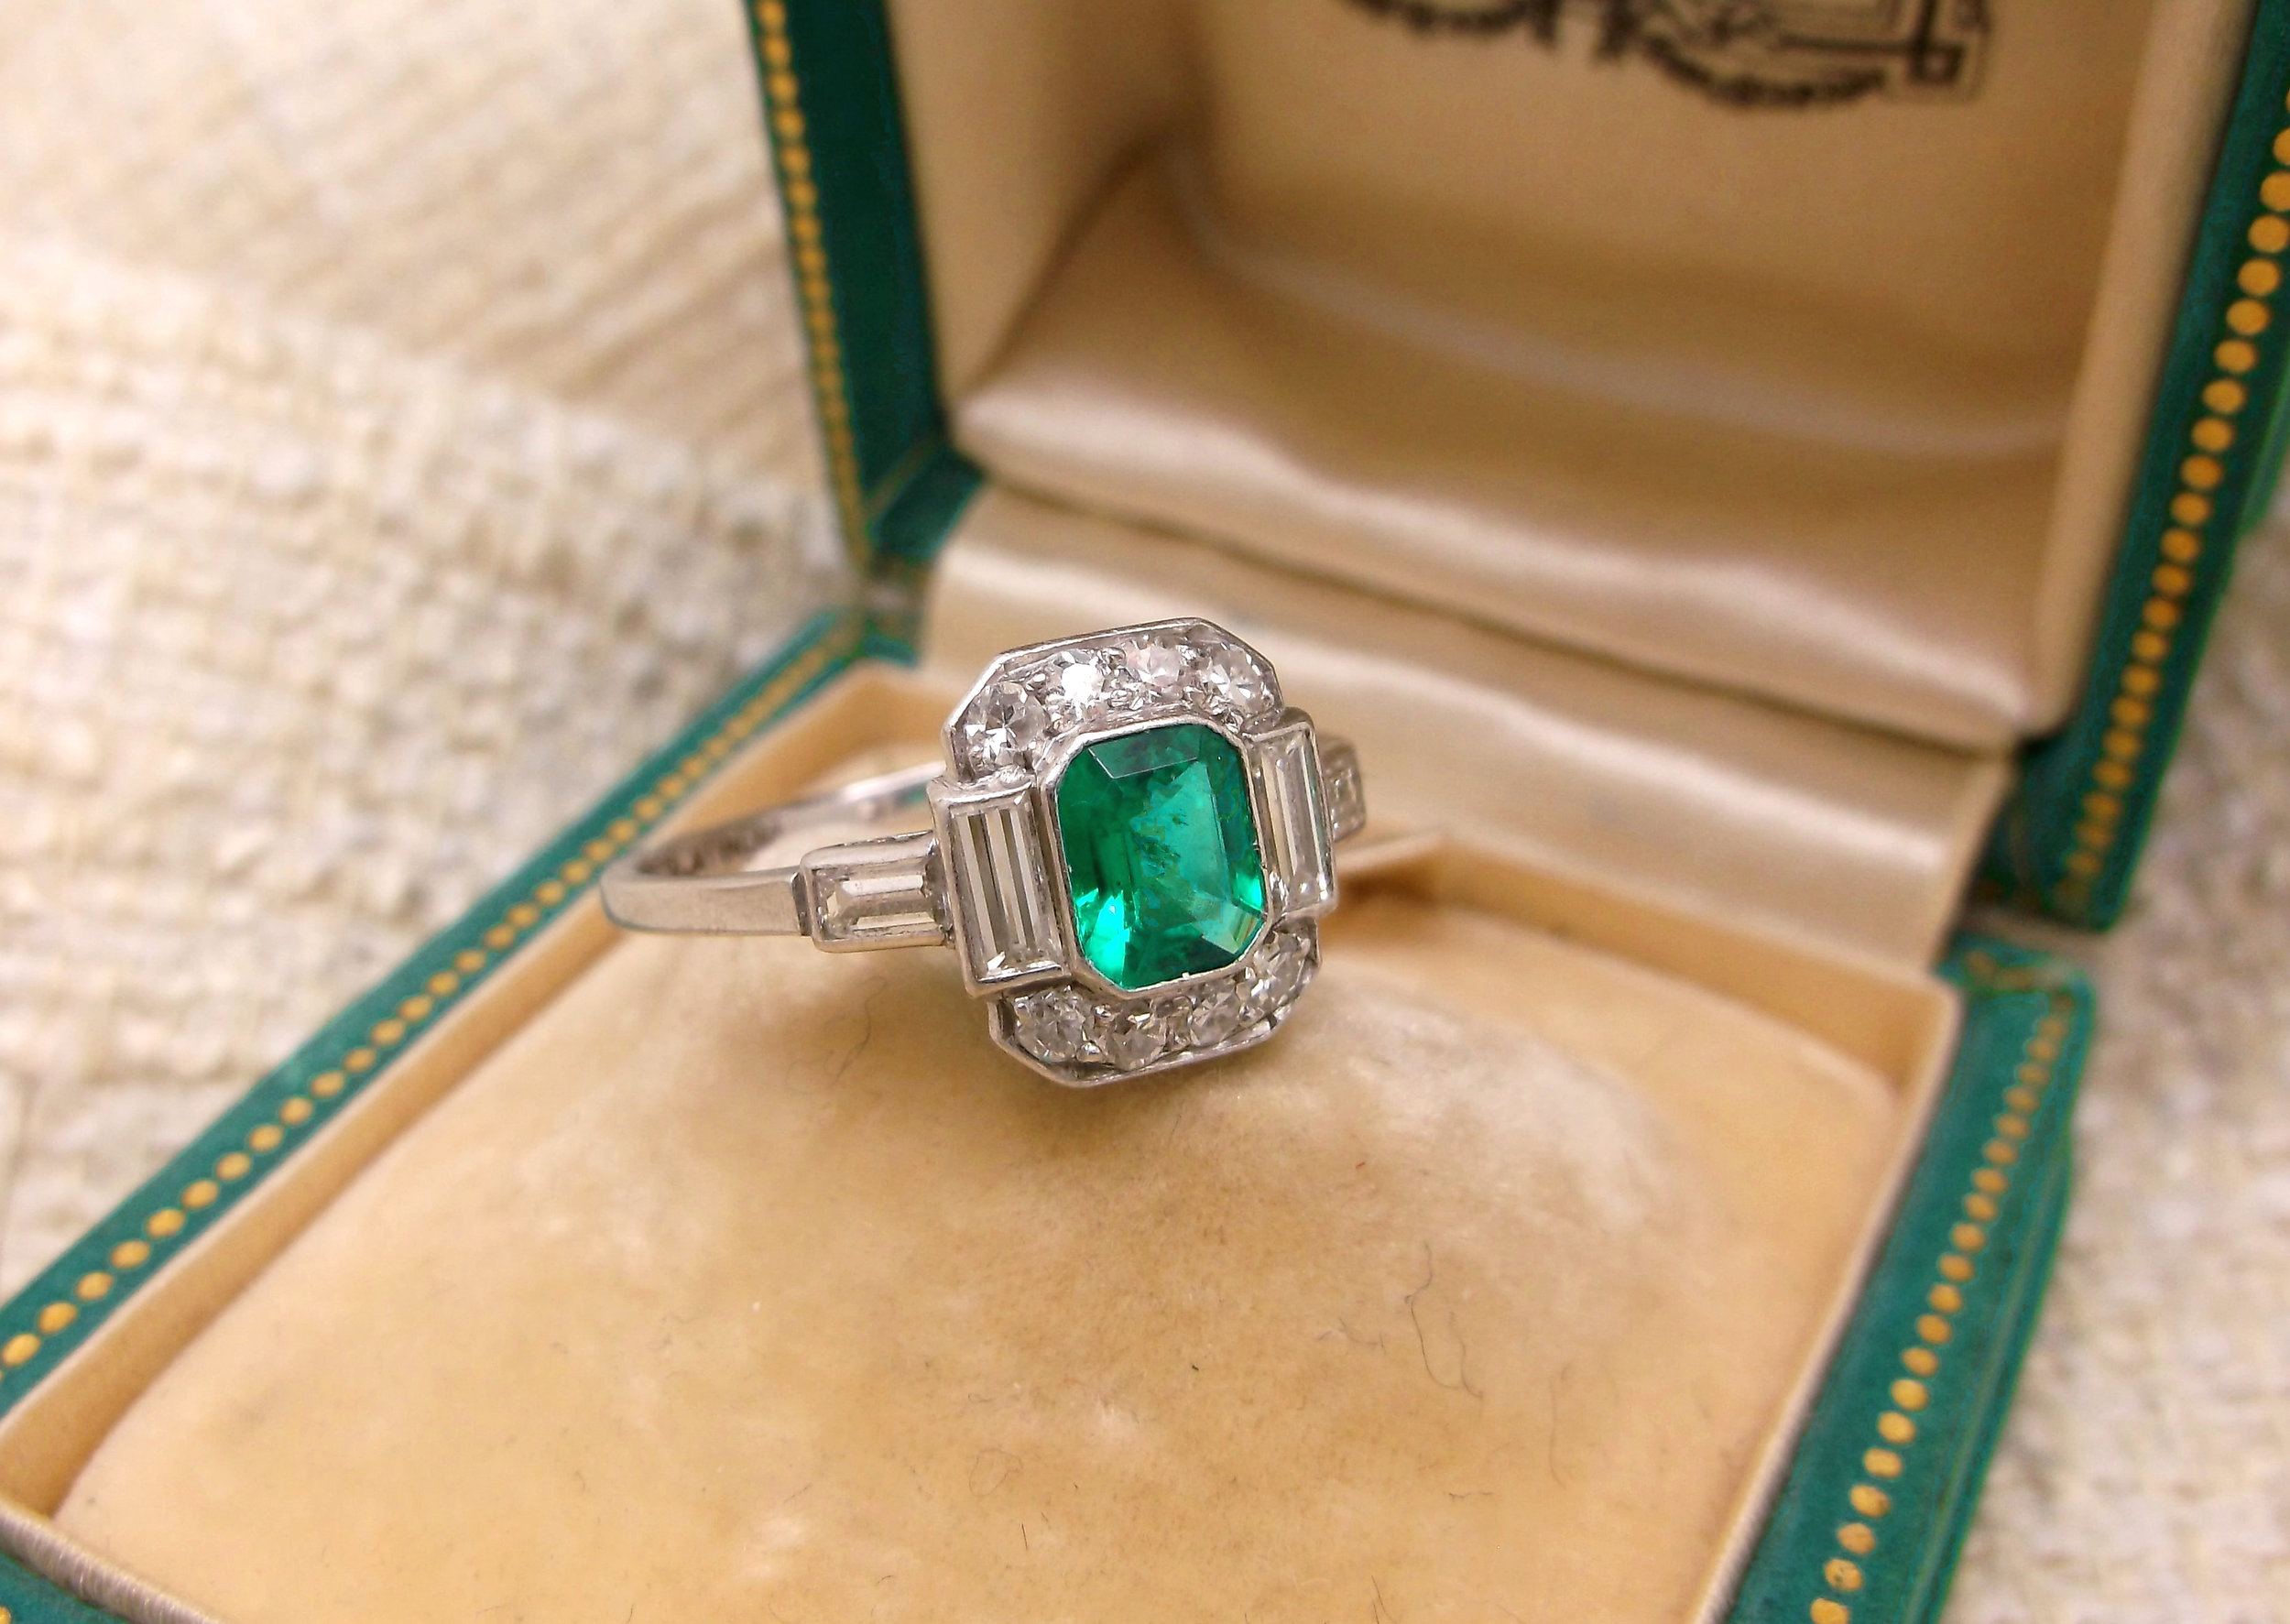 SOLD - Gorgeous Art Deco ring, featuring a center 0.50 carat emerald, surrounded by 0.70 carats total weight in diamonds, all set in platinum.